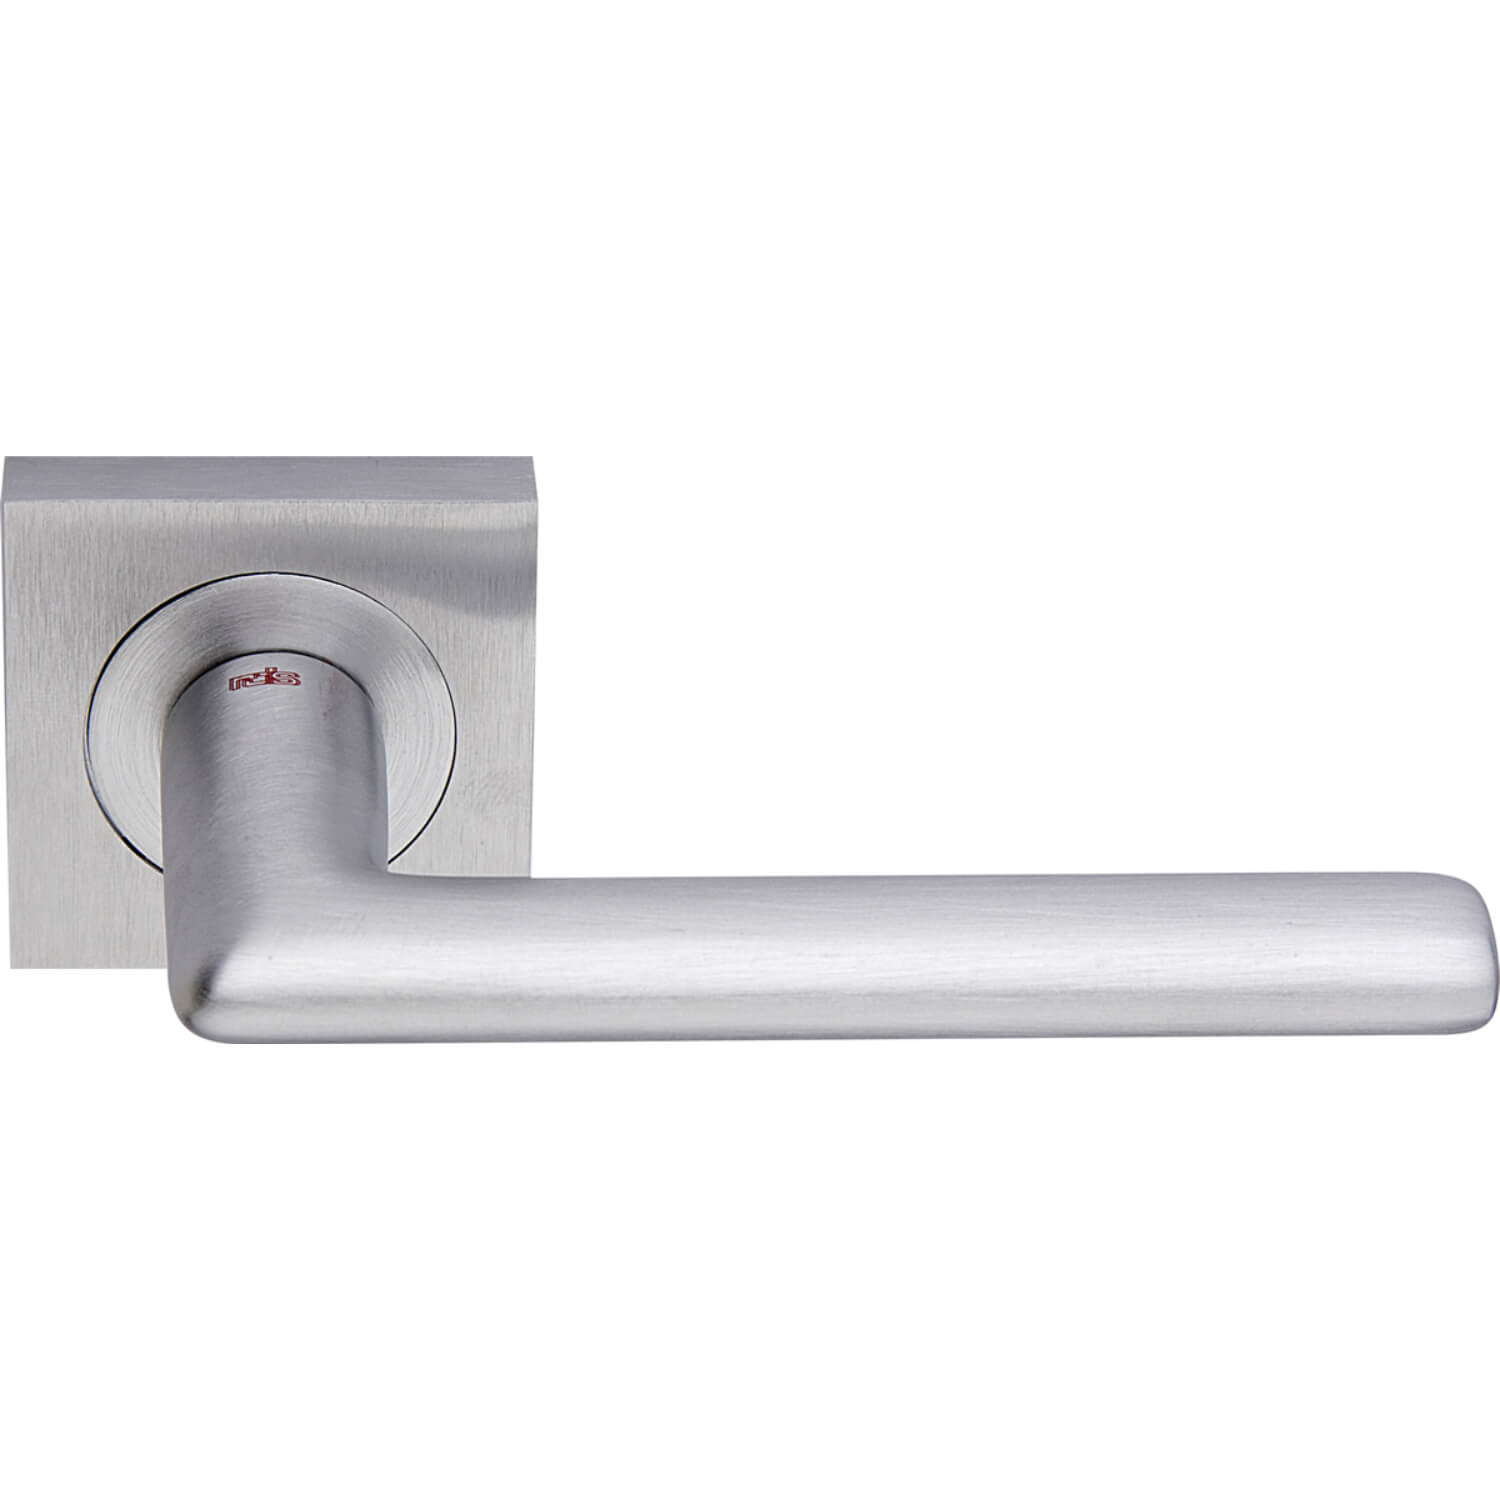 Door Handle, Satin Chrome, Interior, VERONA SQUARE   Chrome And Nickel Door  Handles   VillaHus.co.uk